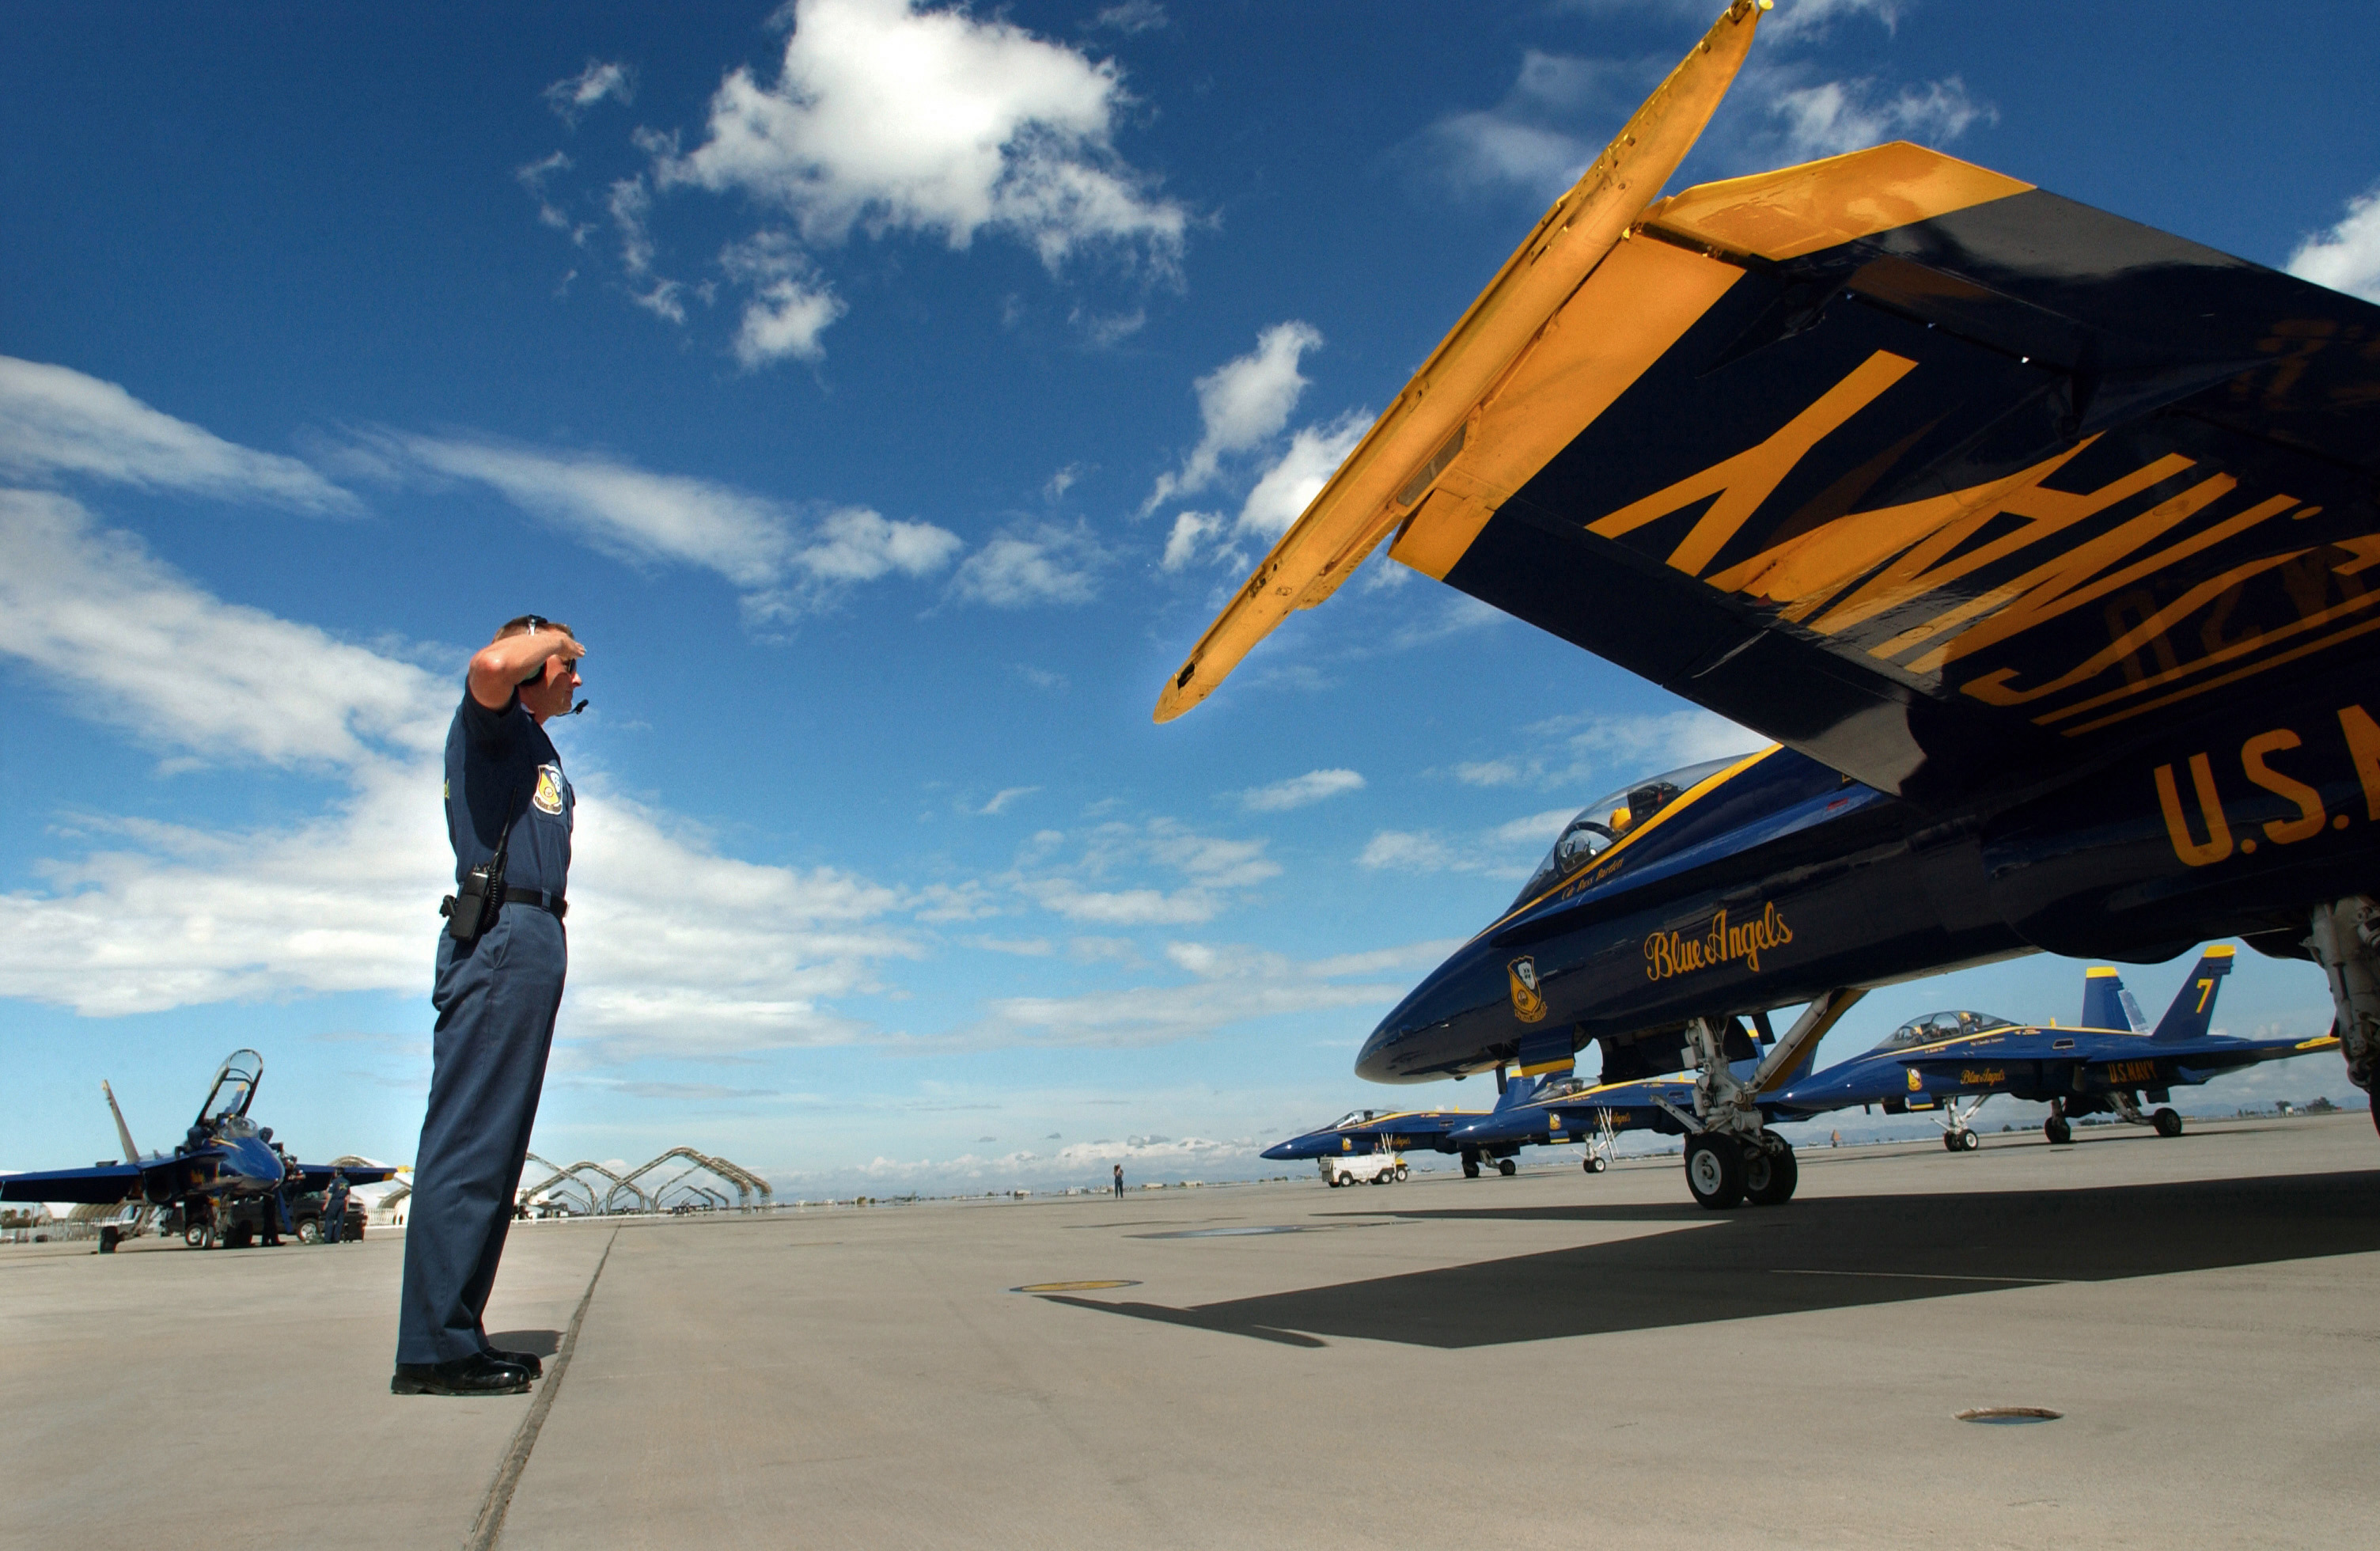 US Navy (USN) Aviation Structural Mechanic First Class (AM1) Ed Pennycook, renders a salute to the flight leader of the USN Blue Angels F/A-18C Hornet aerial demonstration team aircraft as the team taxis onto the runway for a training flight before the Air Show being held at Naval Air Facility (NAF), El Centro, California (CA)